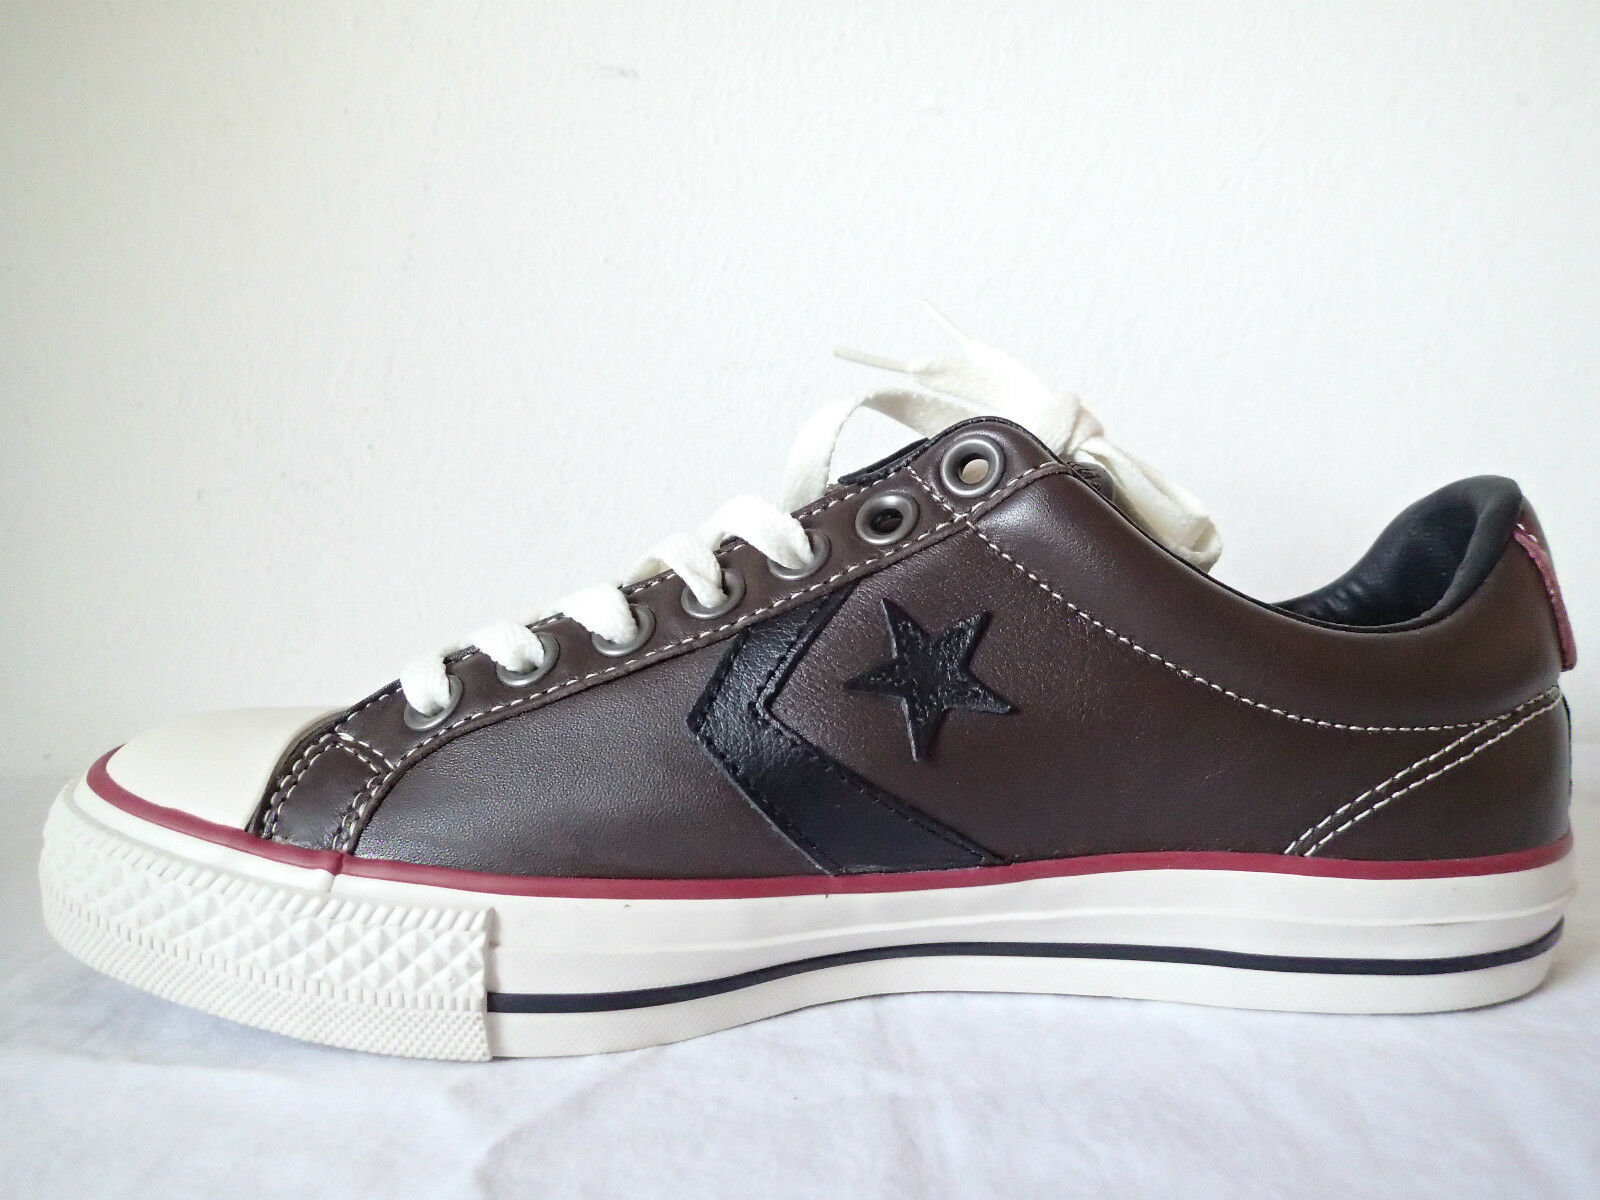 CONVERSE ALL STAR PLAYER EV OX 128177C BROWN MARRONE PELLE LEATHER BASSE TAYLOR